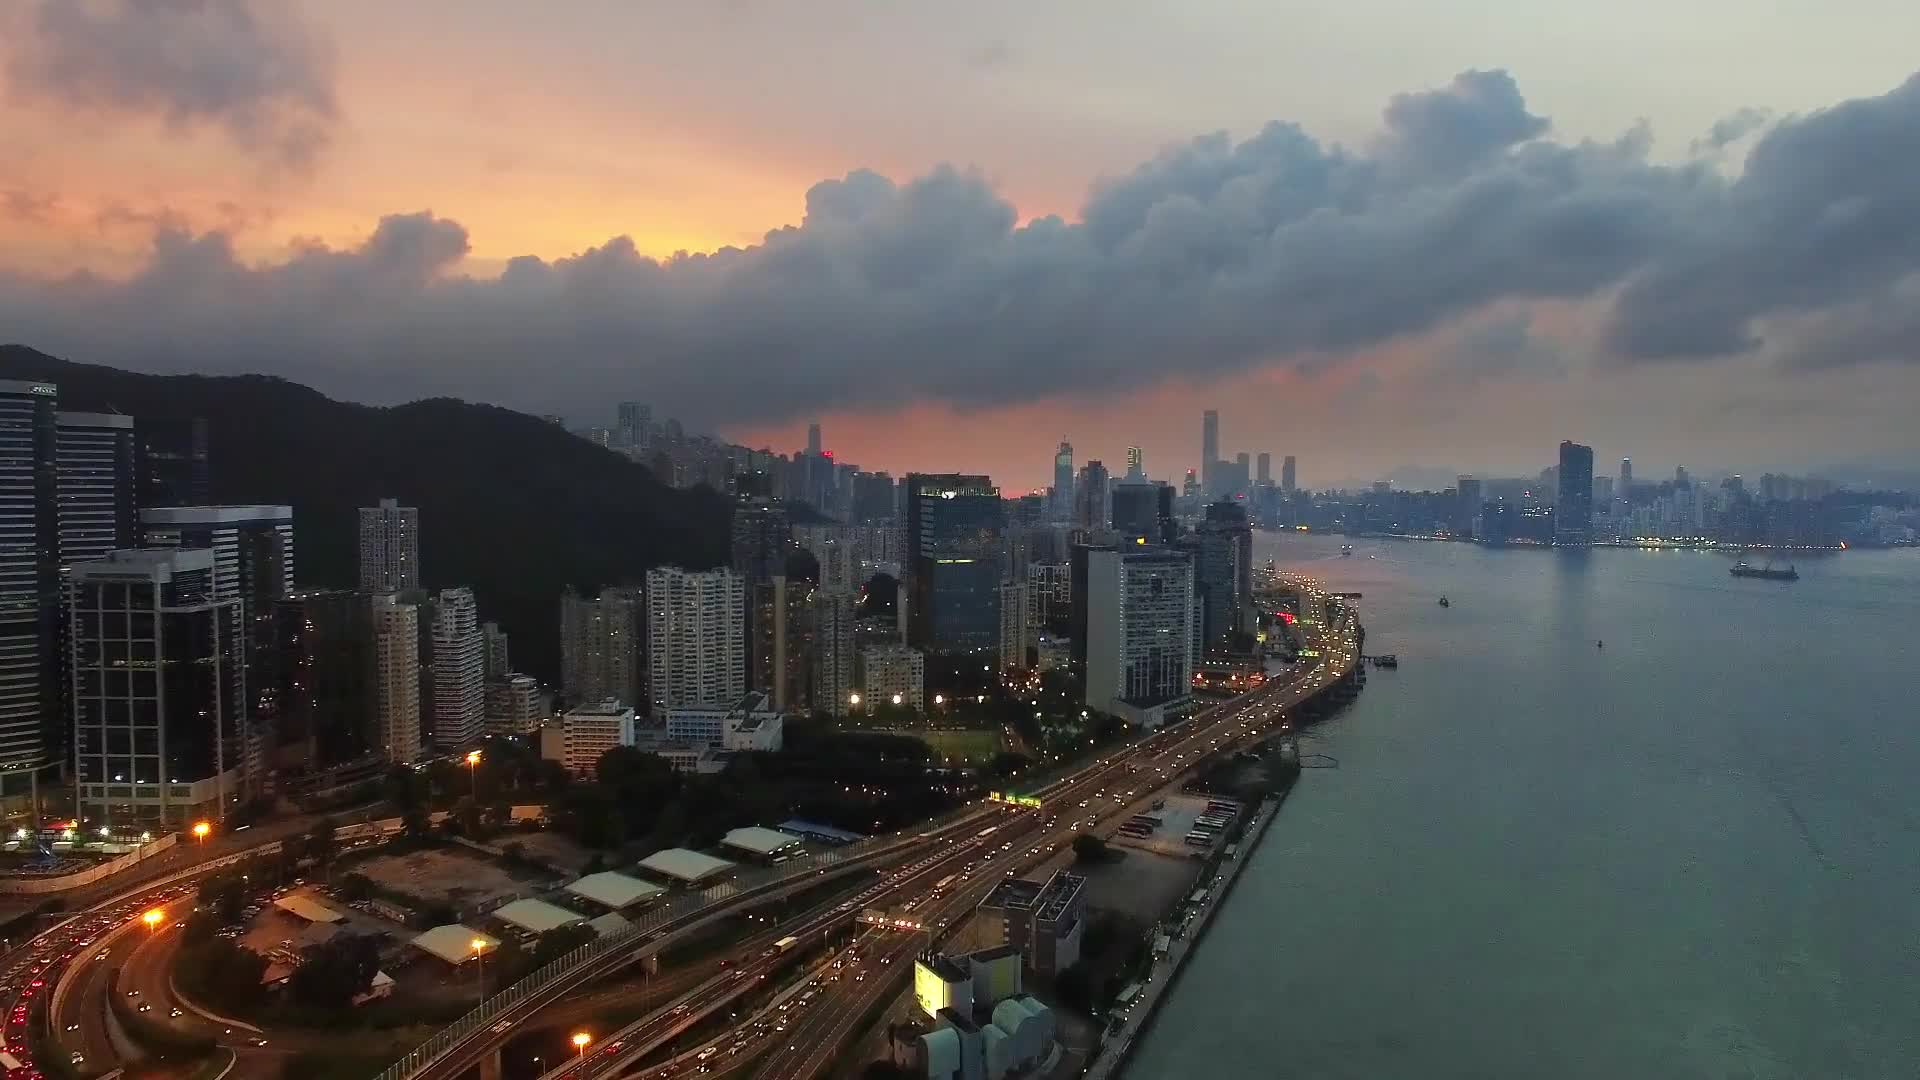 City nightfall hong kong sunset traffic